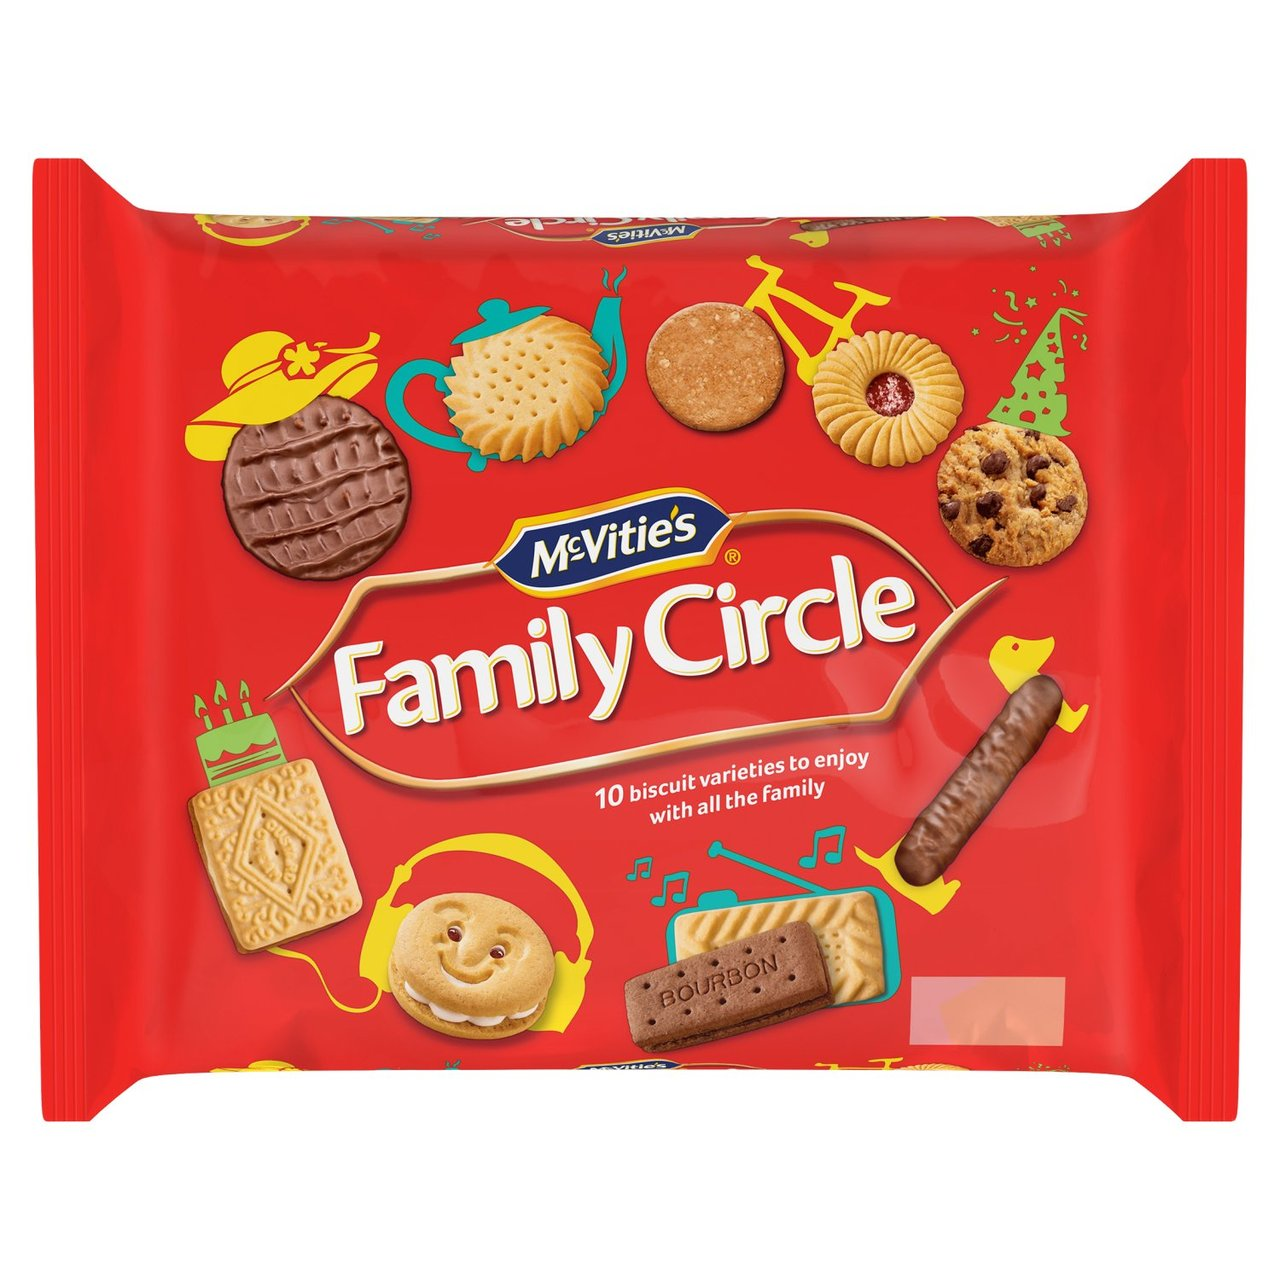 A 310g pack of McVities Family Circle biscuits will set you back £3 on Ocado